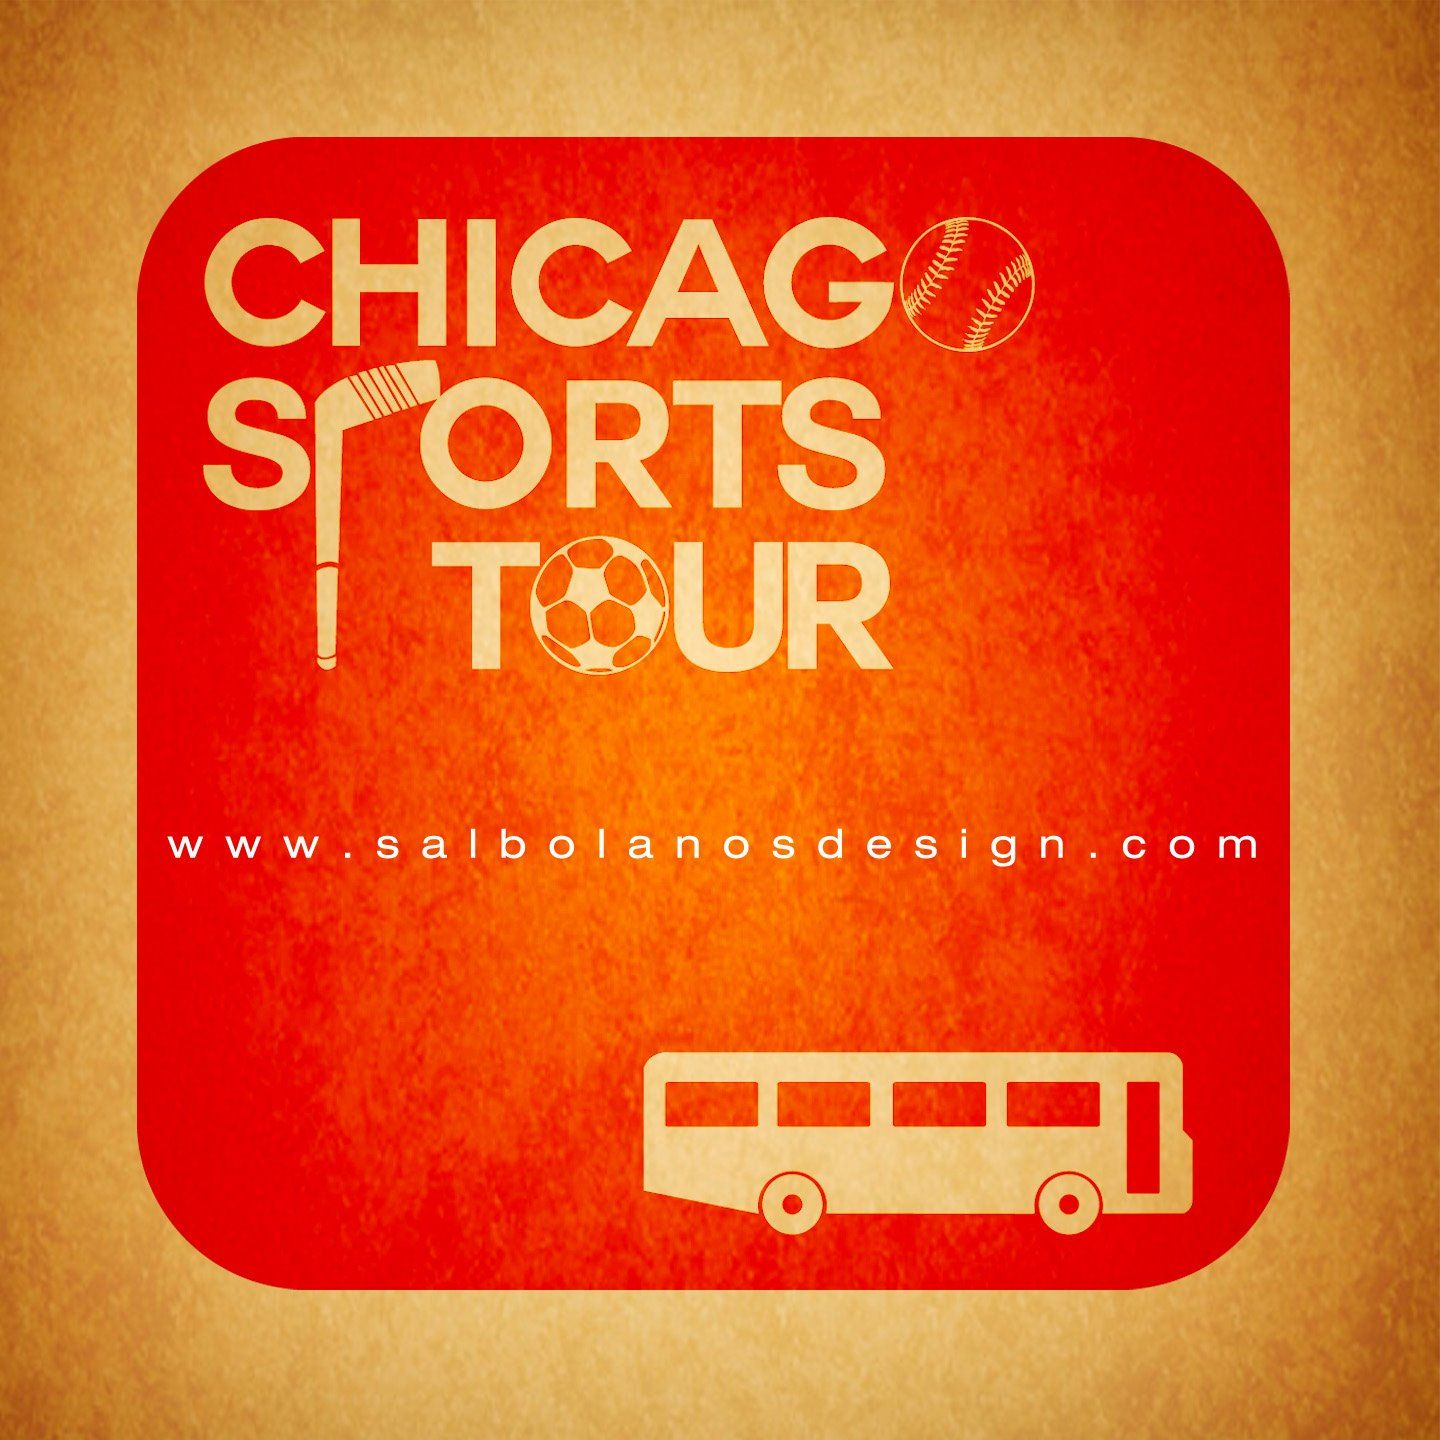 Chicago Sports Tour Logo Design Sports logo design